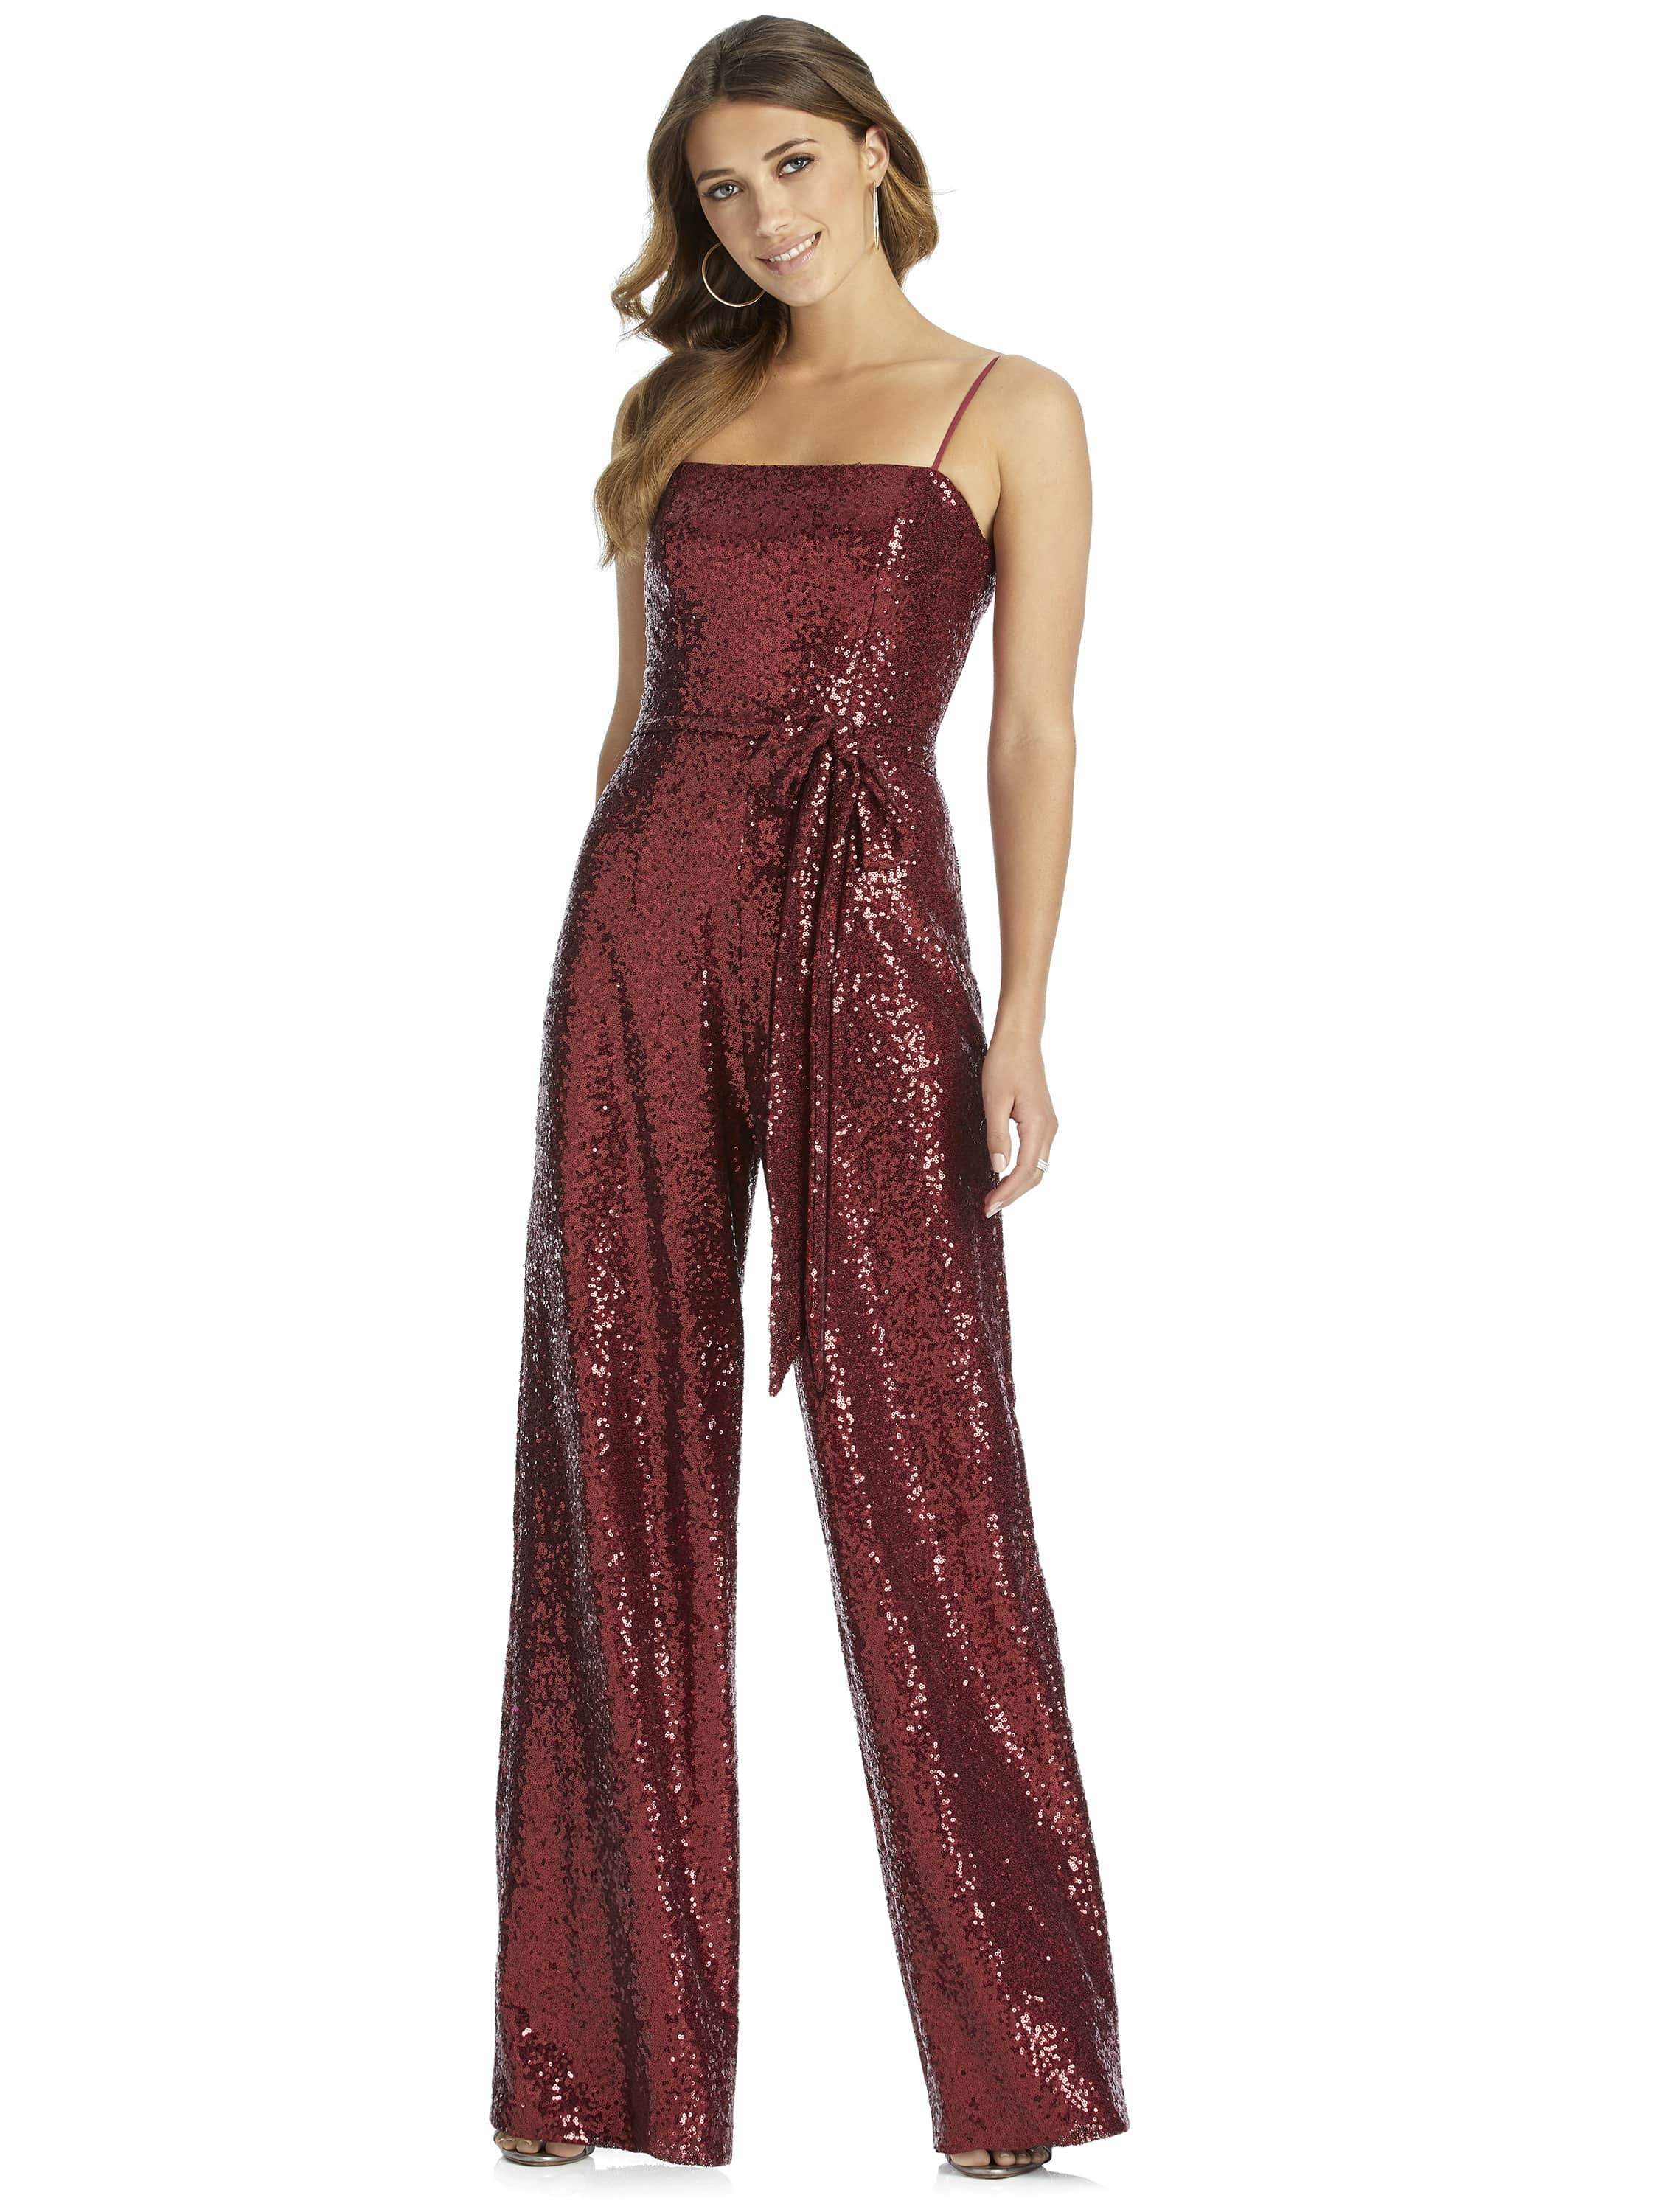 Bow detail jumpsuit with spaghetti straps by Dessy Group Bridesmaids style 3048